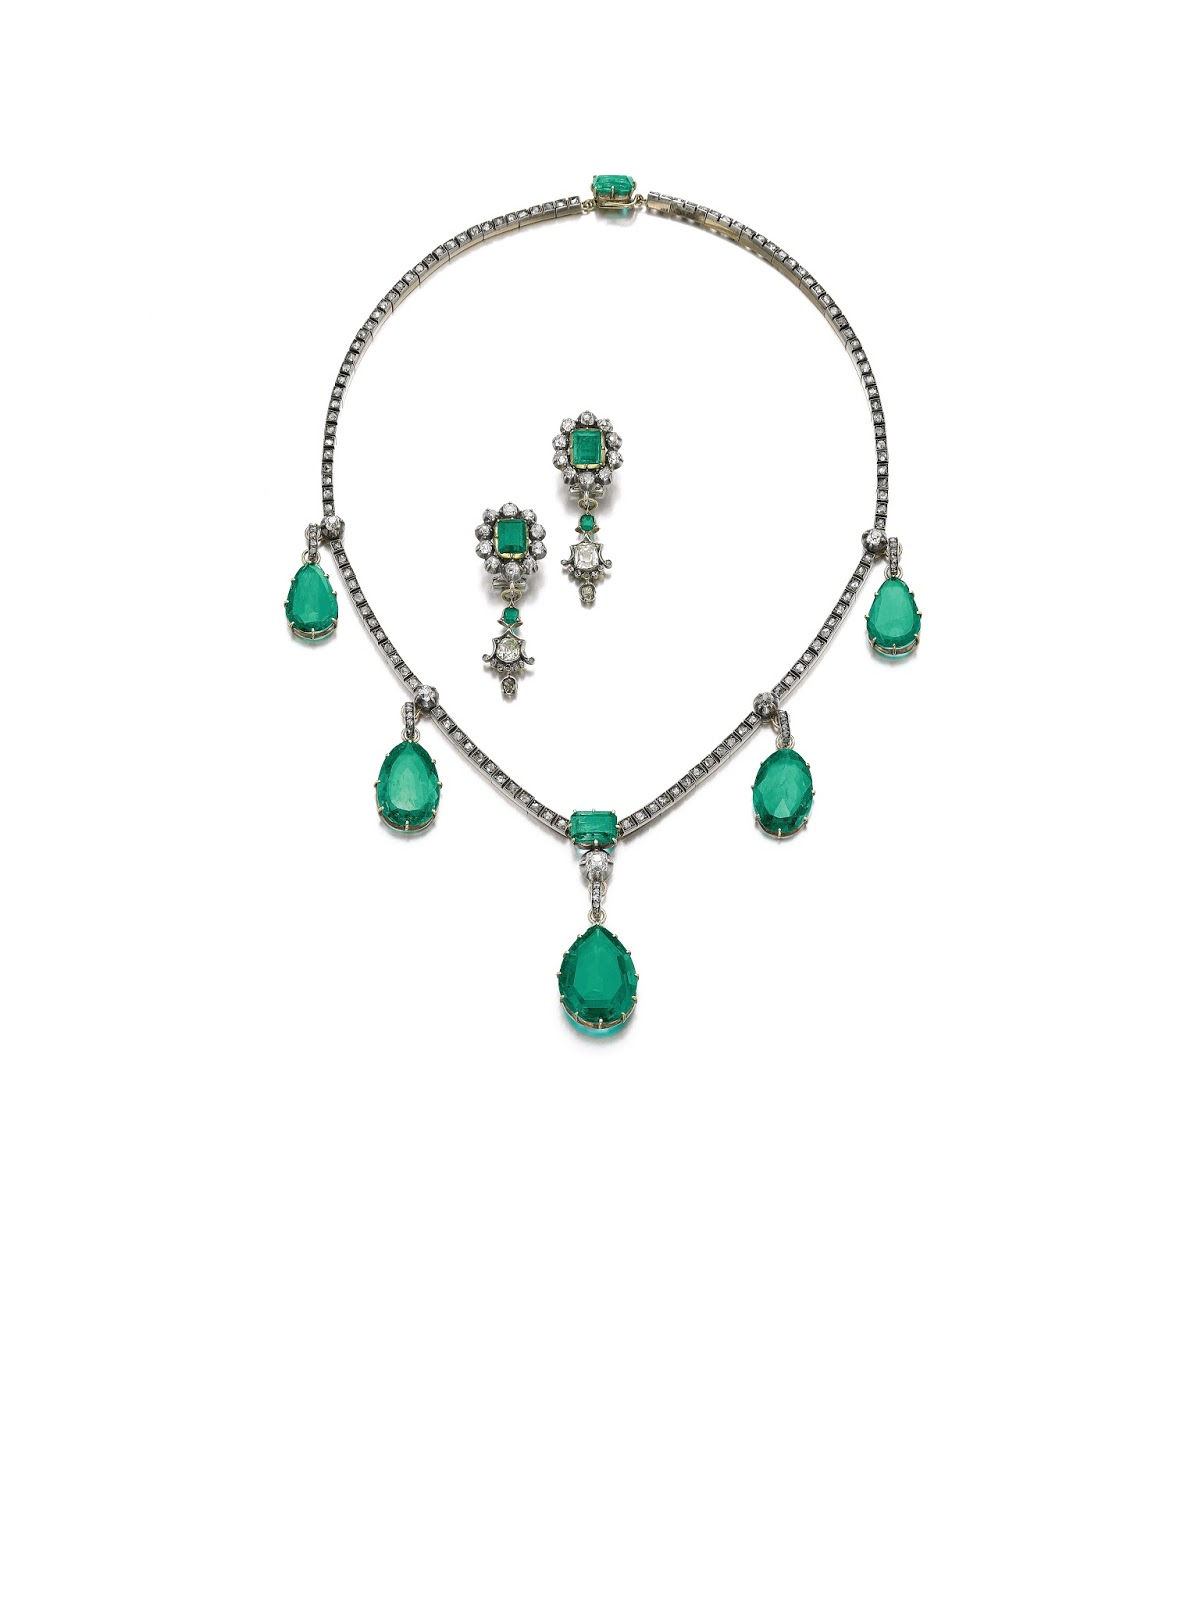 Lot 402 - The Duchess of Berry Emerald Necklace and a pair of earrings